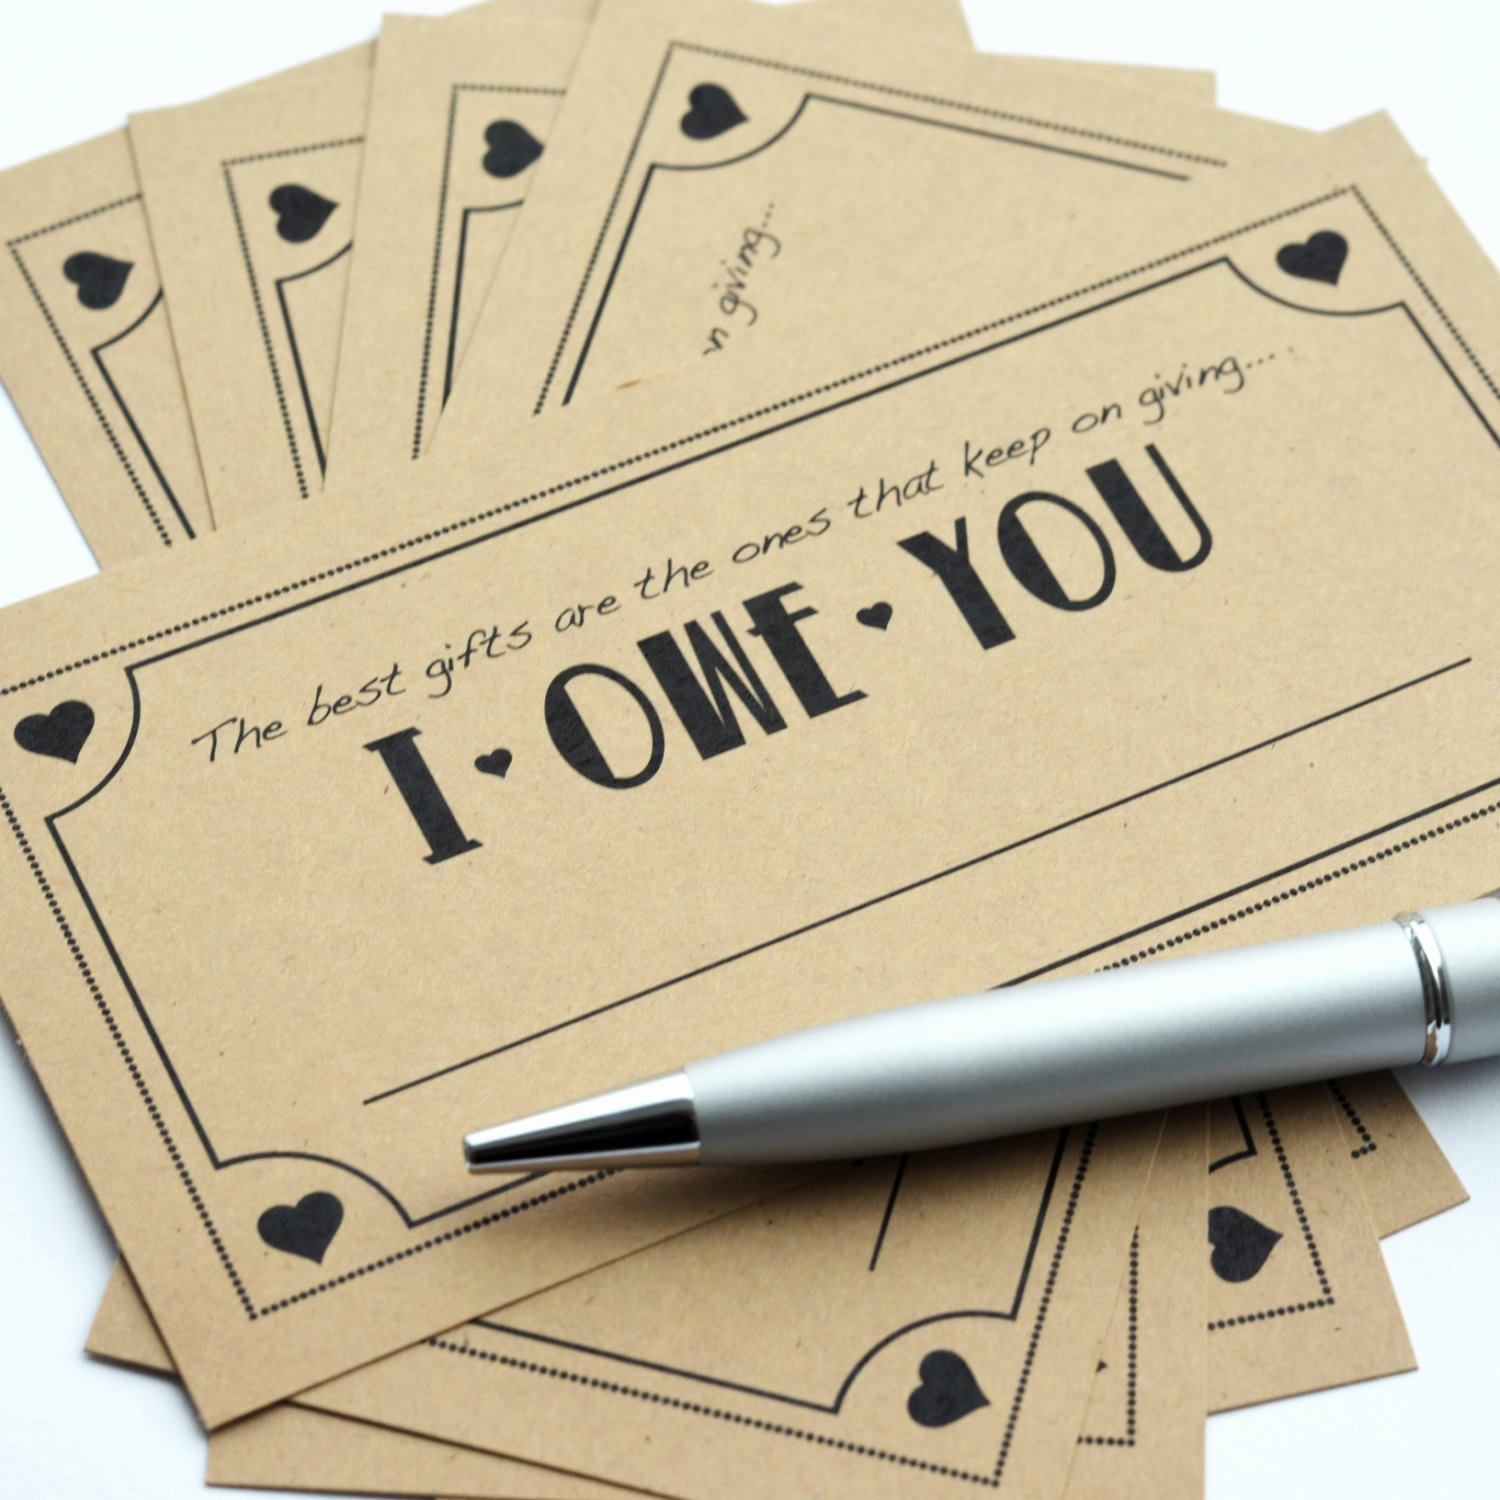 I Owe You Template Awesome Coupon Pack Cute I Owe You Love Coupon Pack for